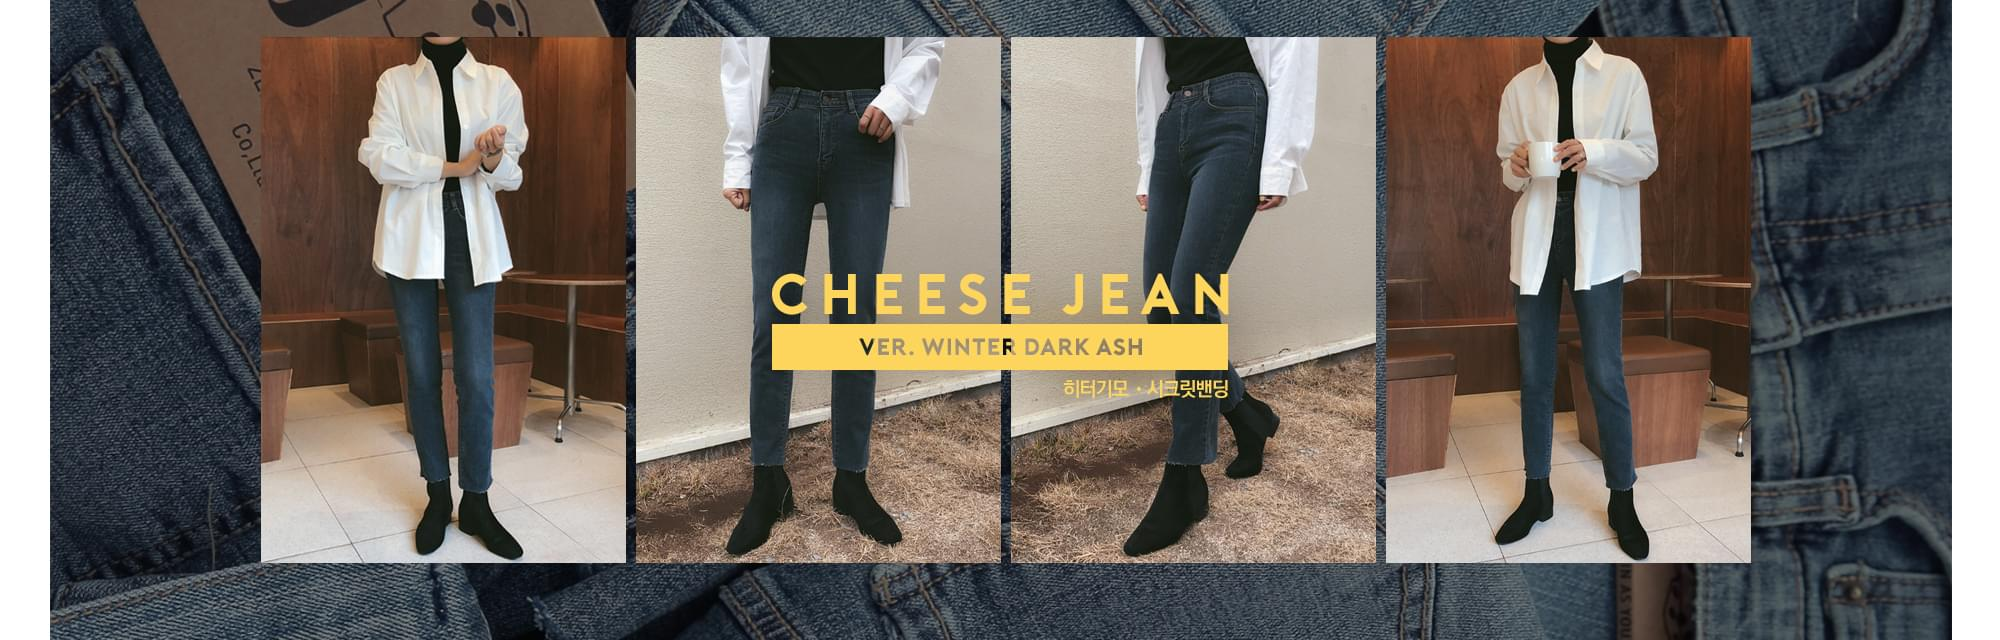 2018 Winter Cheese Jean (Brushed heater)